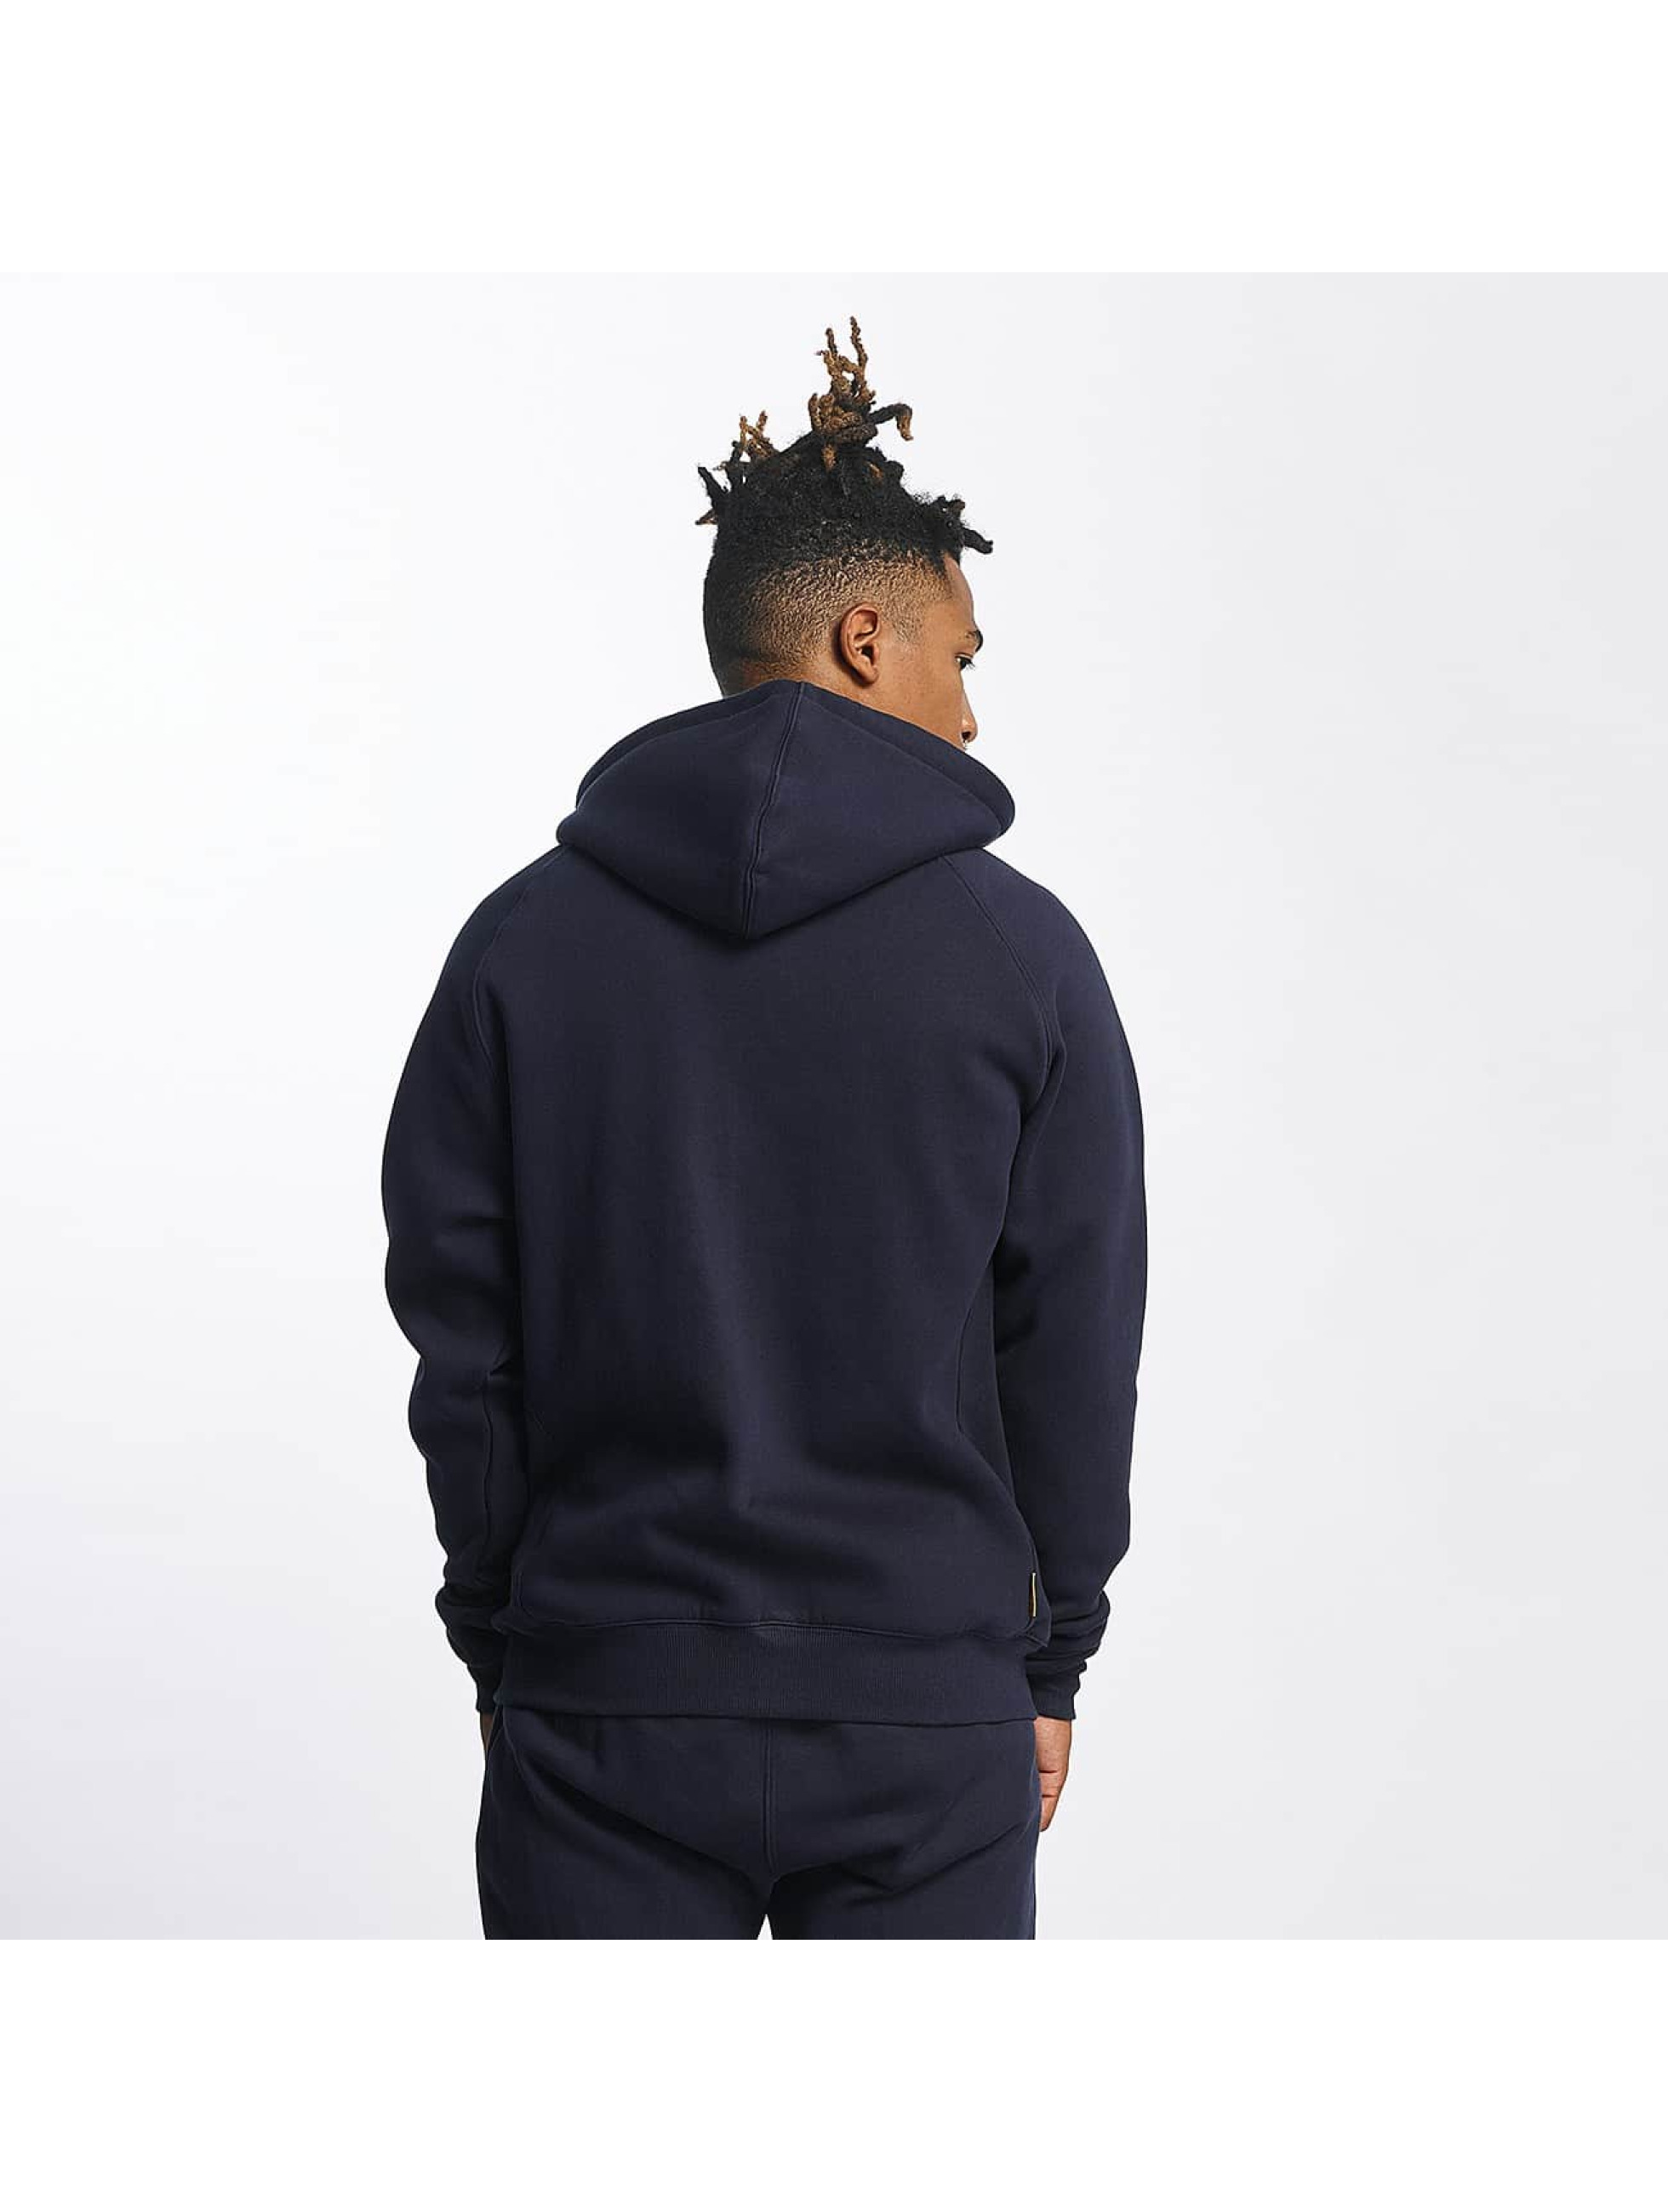 CHABOS IIVII Zip Hoodie Athletic Raglan Zipper modrá